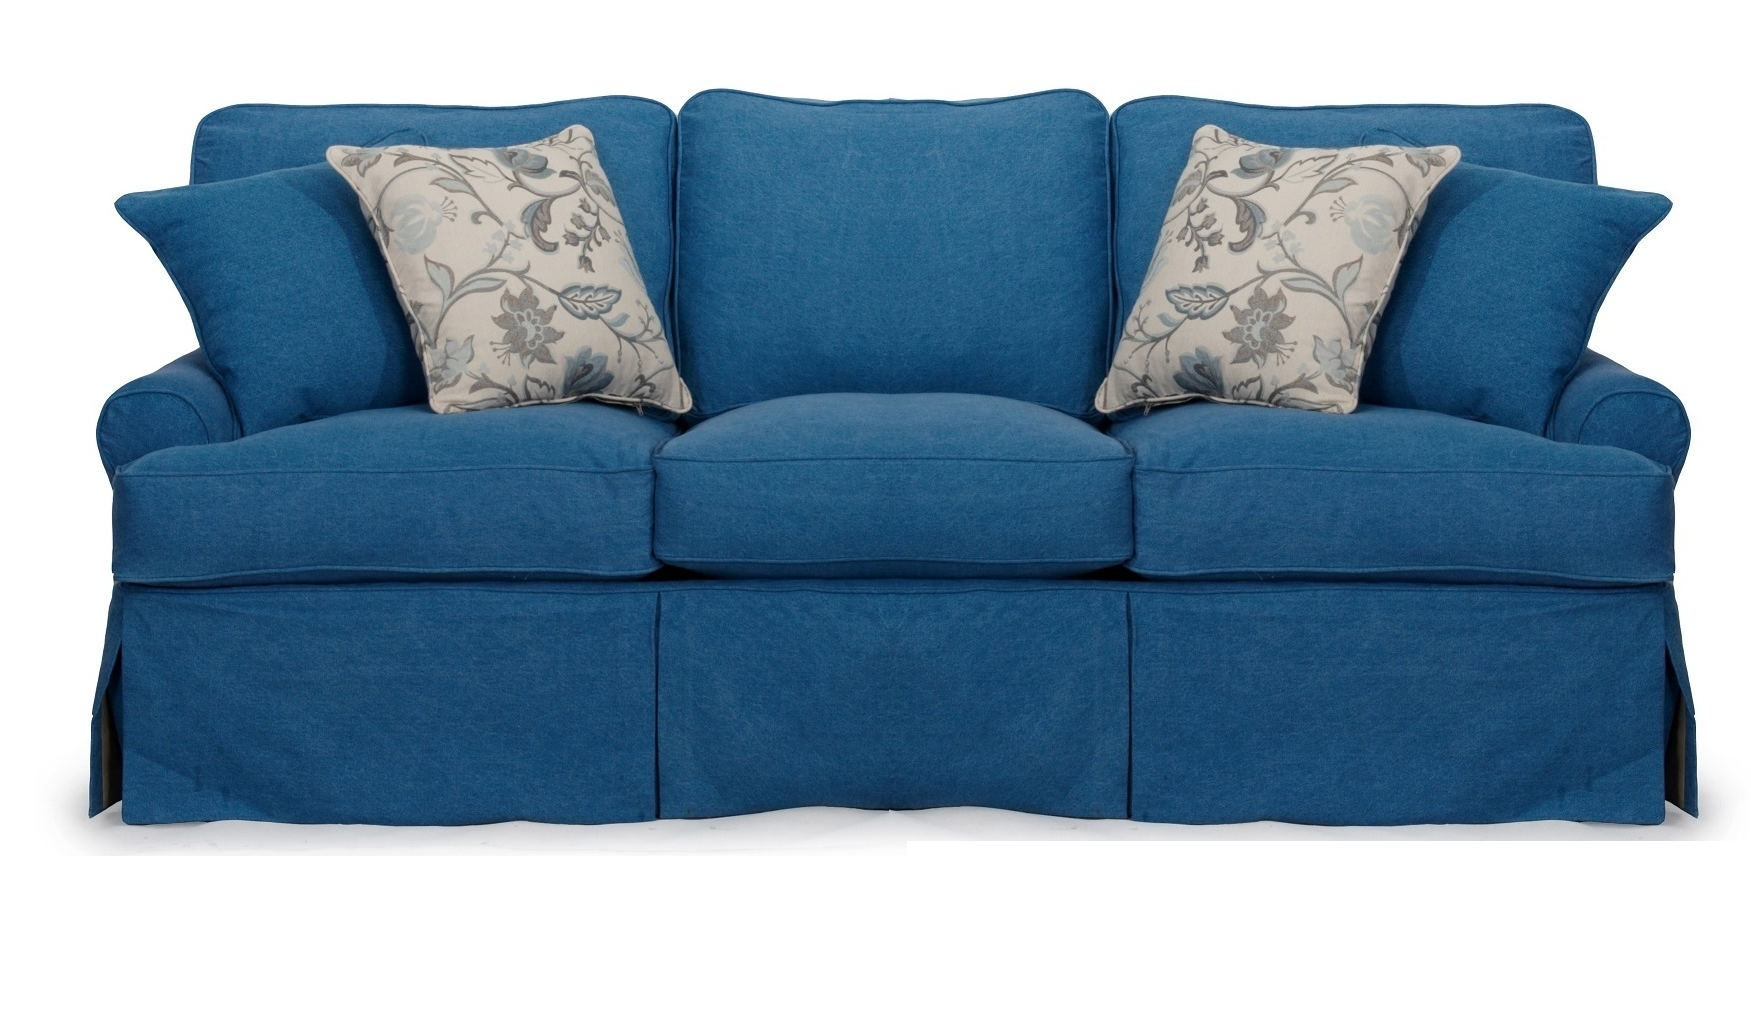 Well Known Sofa: Best Ashley Furniture Blue Sofa Couch Furniture, Ashley Sofa Inside Blue Sofa Chairs (View 20 of 20)